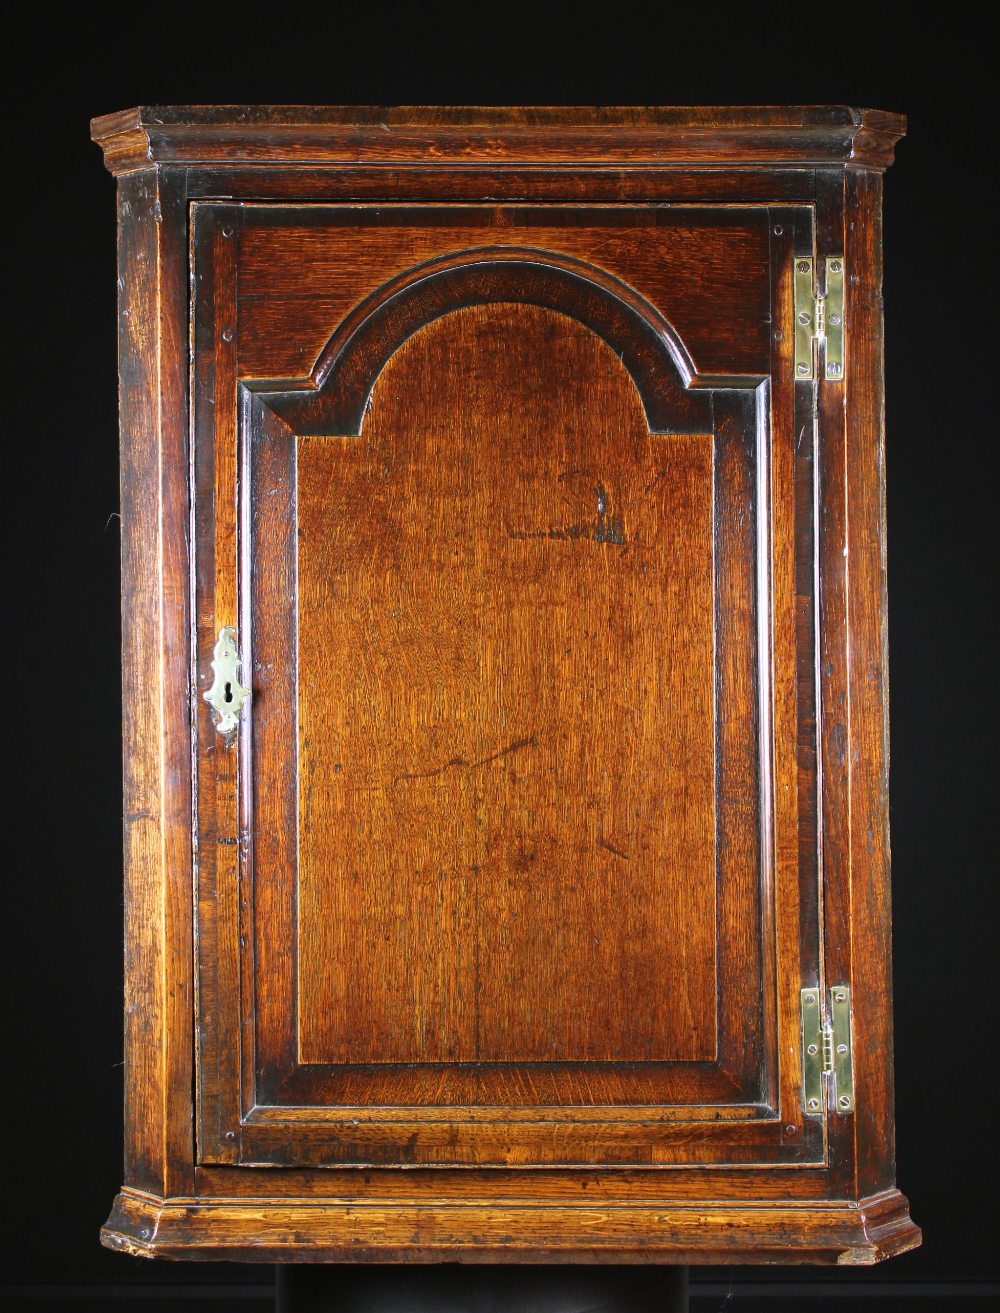 Lot 50 - A George III Oak & Mahogany Cross-banded Hanging Corner Cupboard of fine colour and patination.